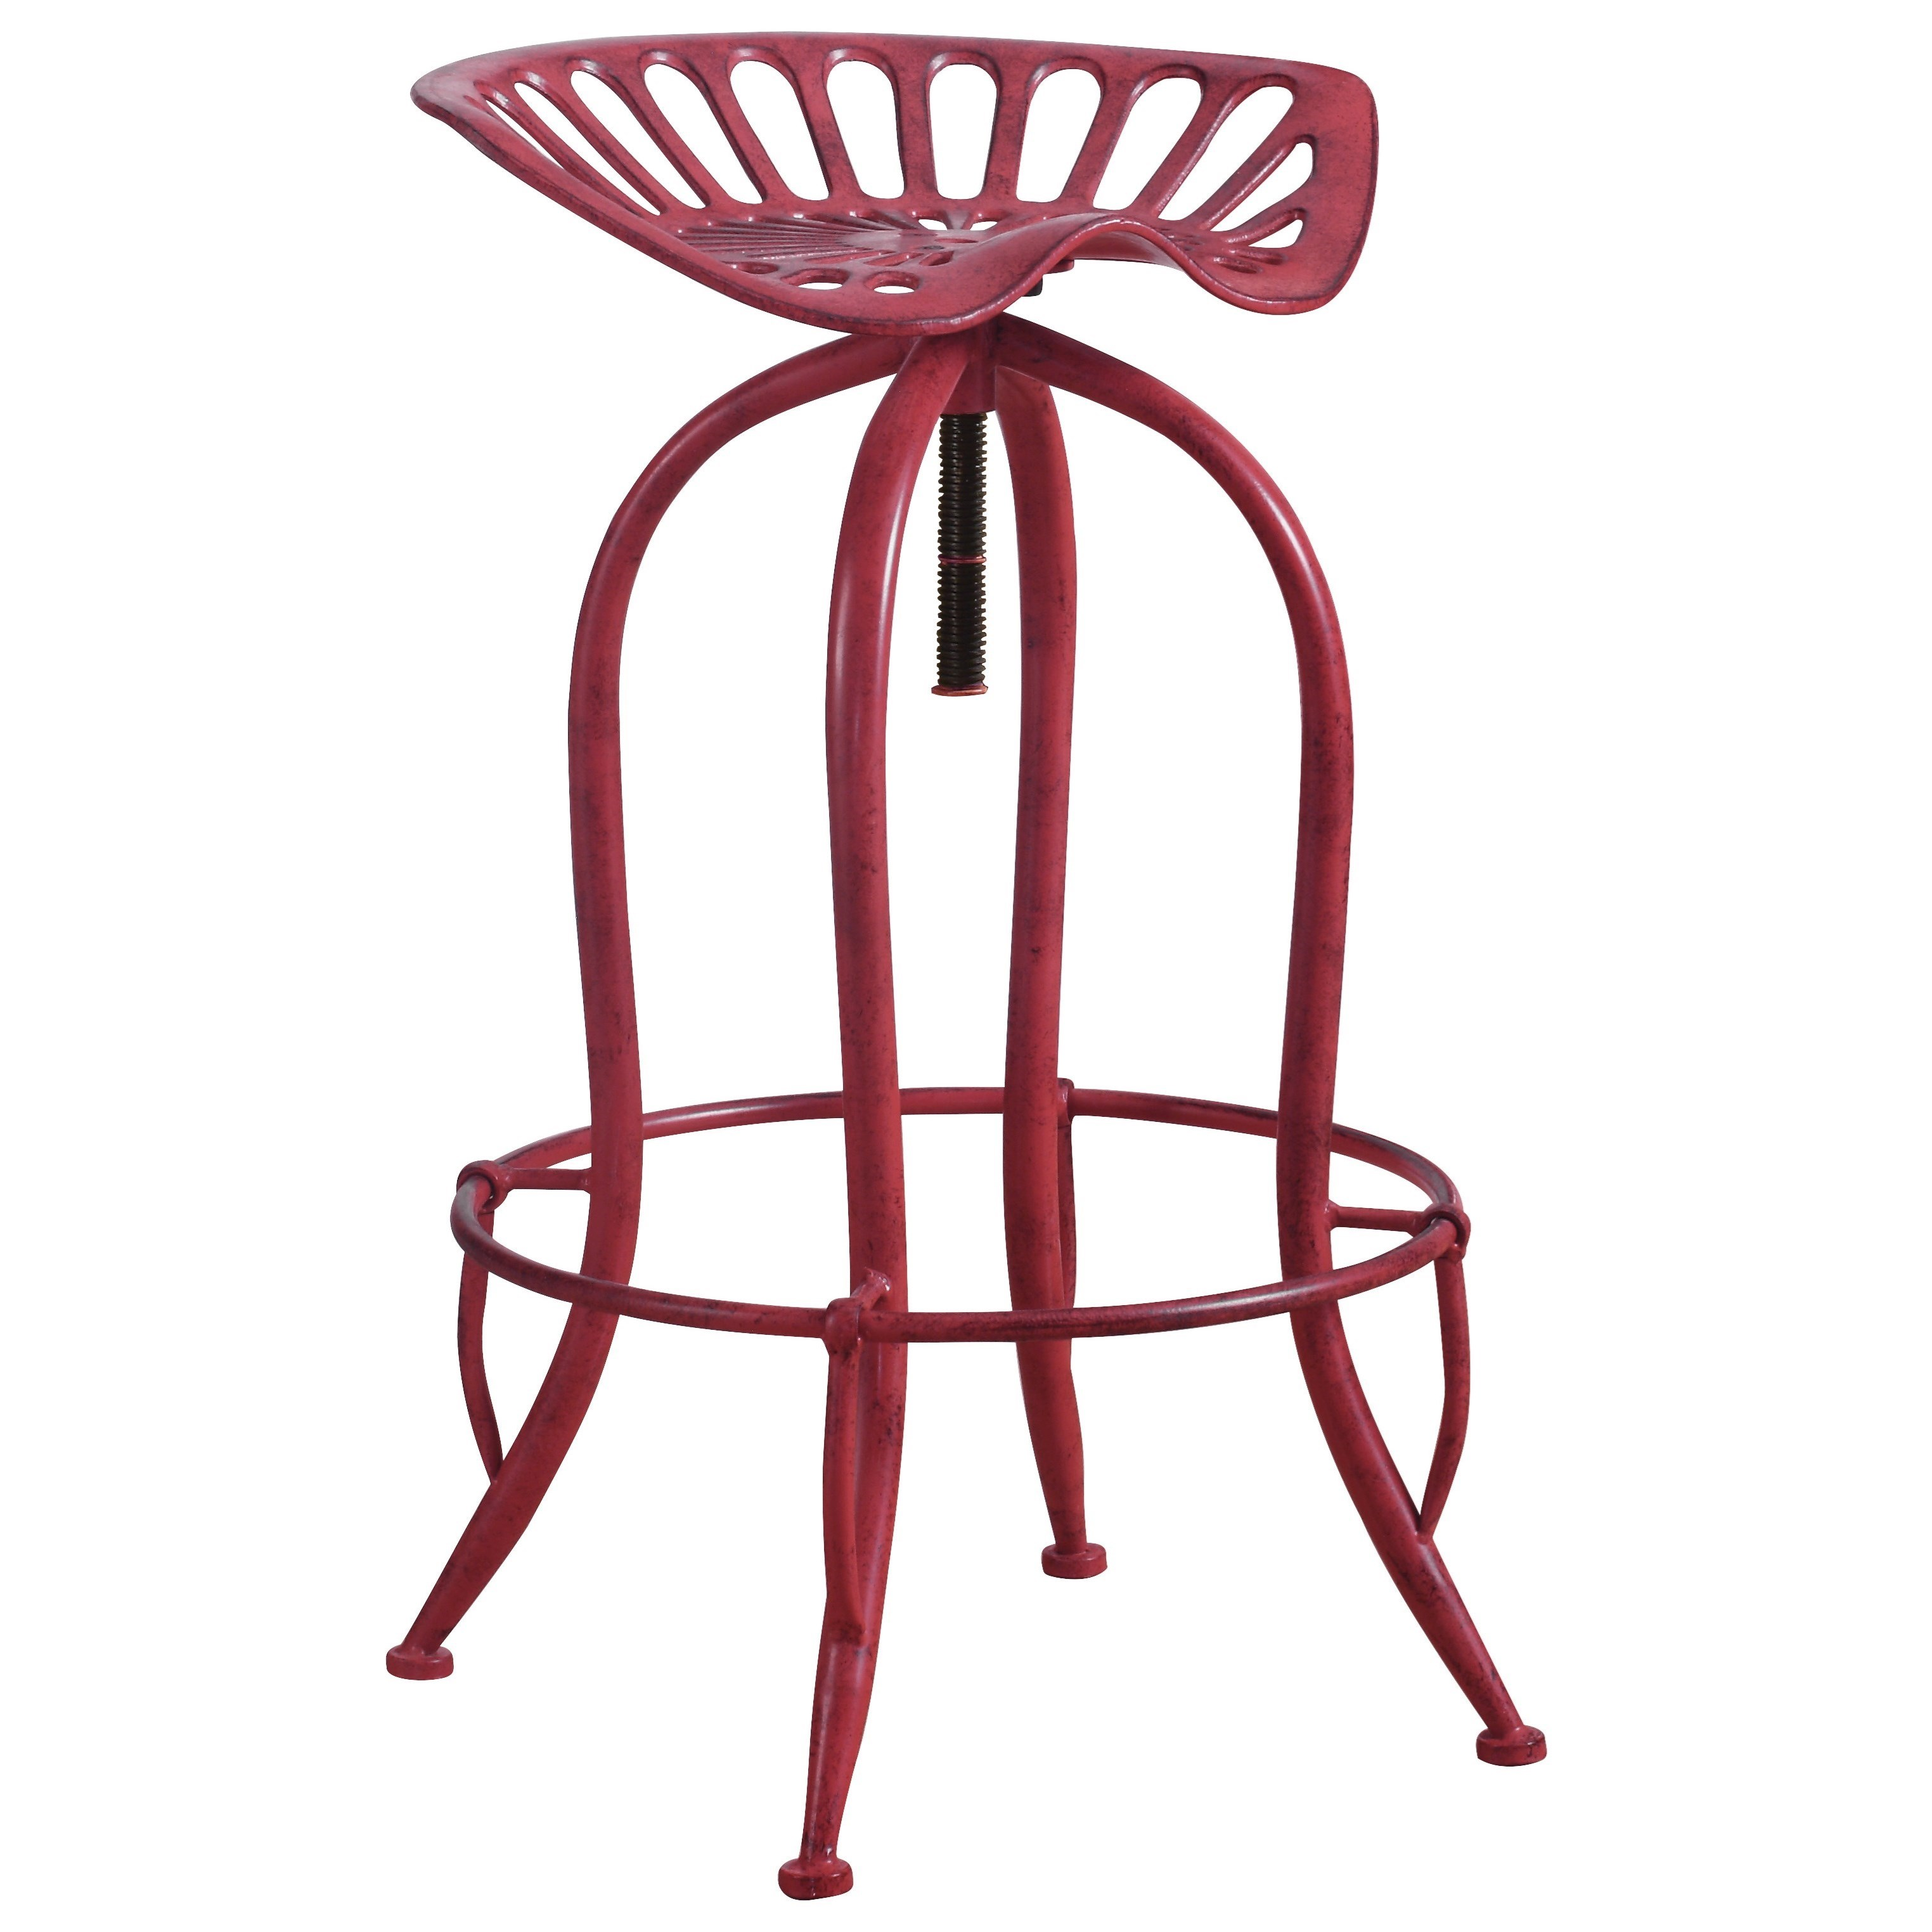 Bar Stool Chairs Dining Chairs And Bar Stools Metal Tractor Seat Adjustable Stool By Coaster At Rooms For Less